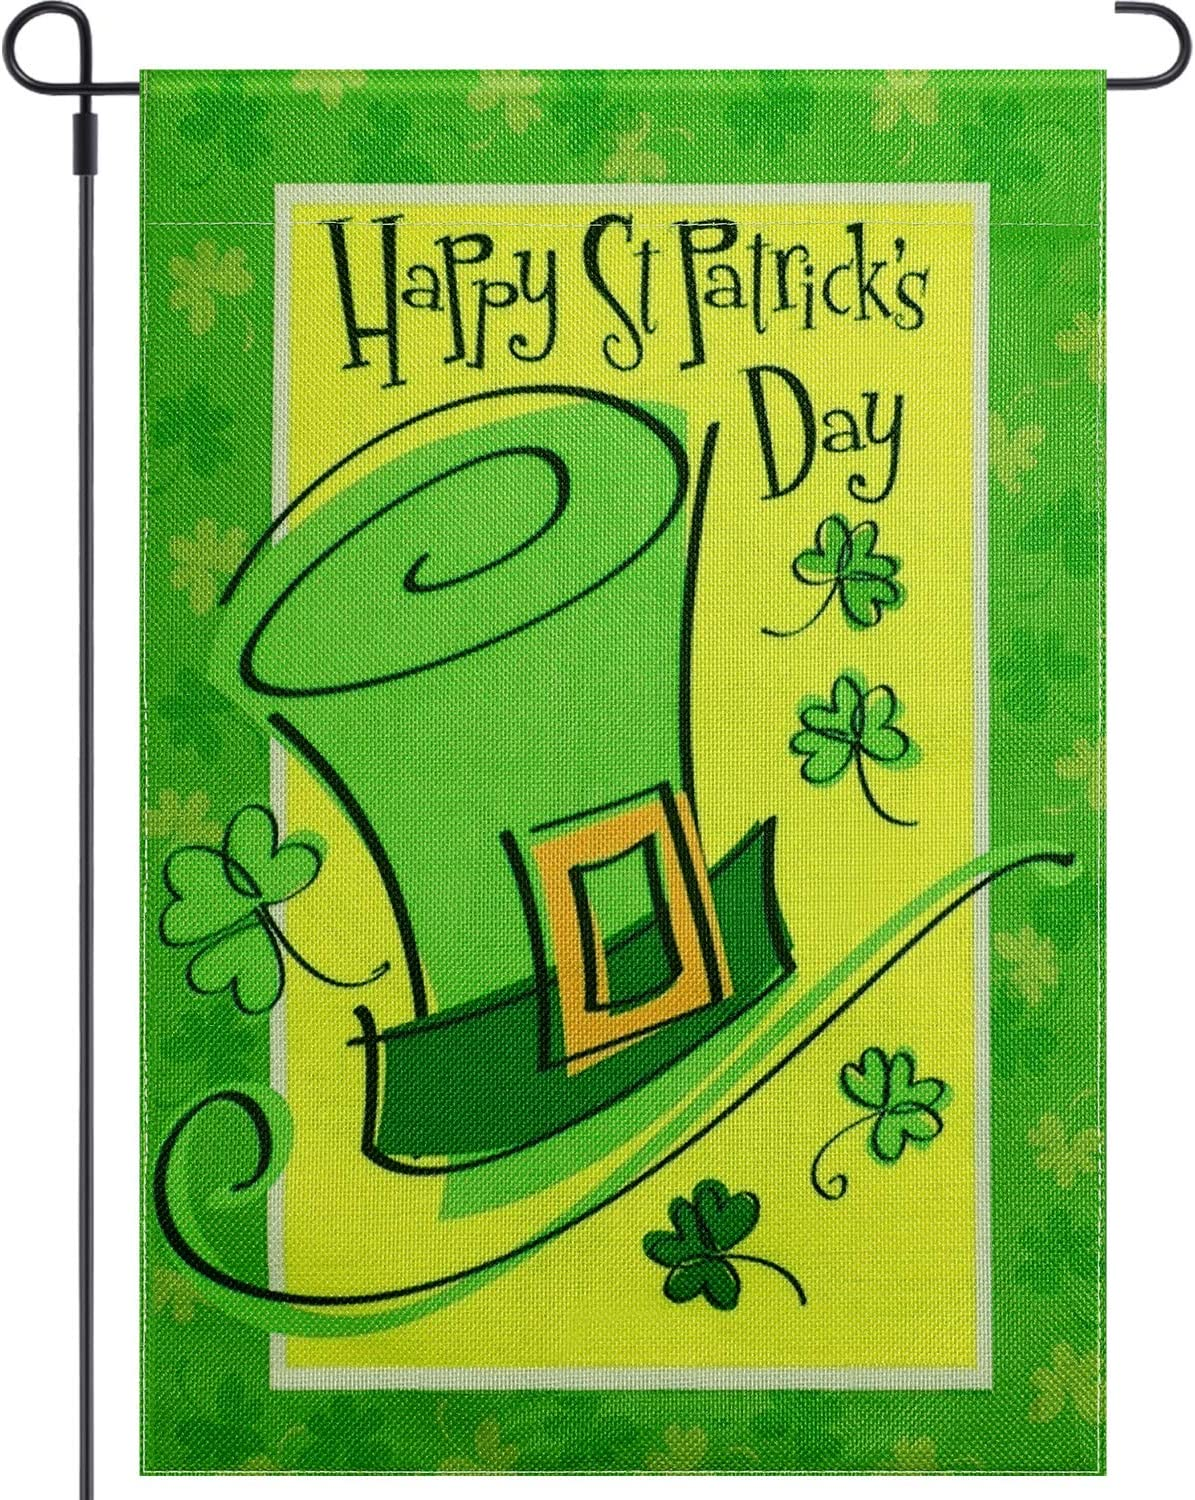 Boao St Patrick's Day Garden Flag Shamrock Double Sided Irish Shamrock Yard Flag Holiday Decorative Flag 12 x 18 Inch for St Patrick's Day Indoor Outdoor Decoration